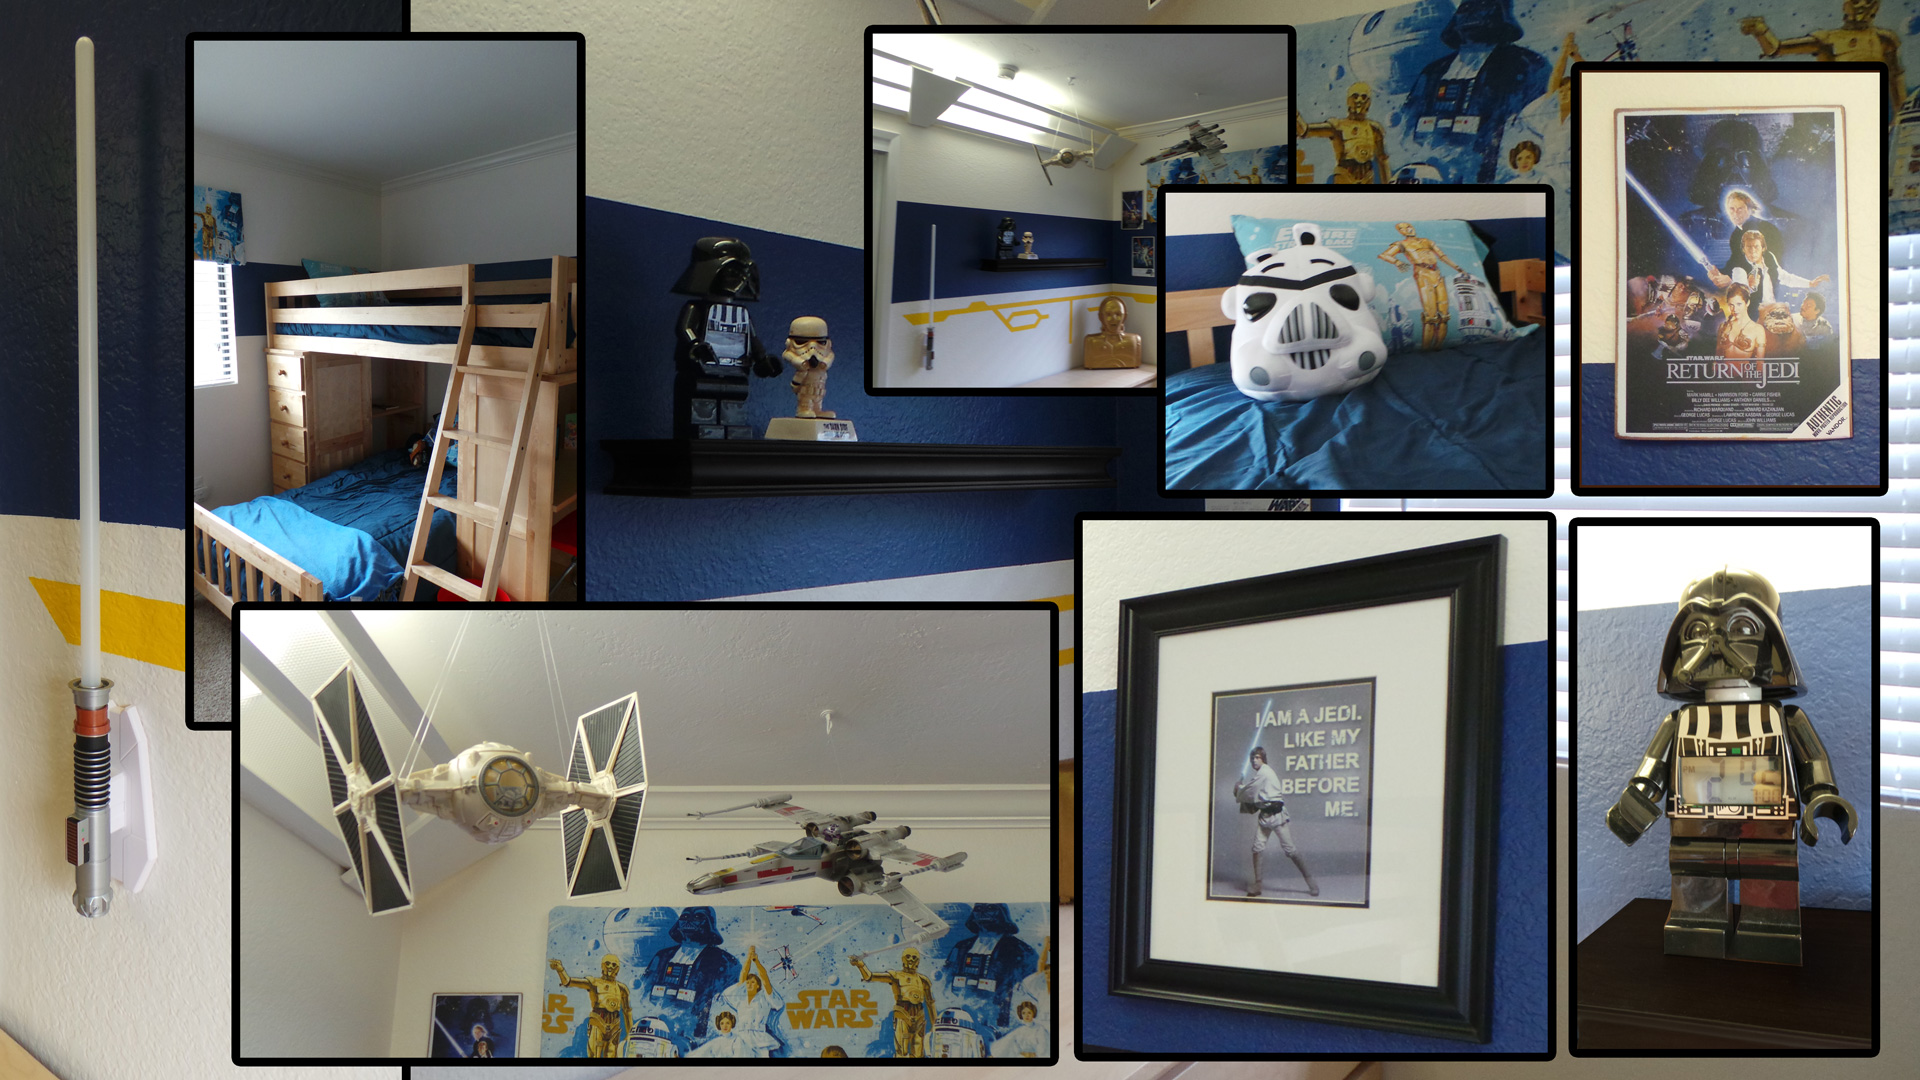 Star Wars Bedroom Ideas Themes Star Wars Room Highlights Along The Way